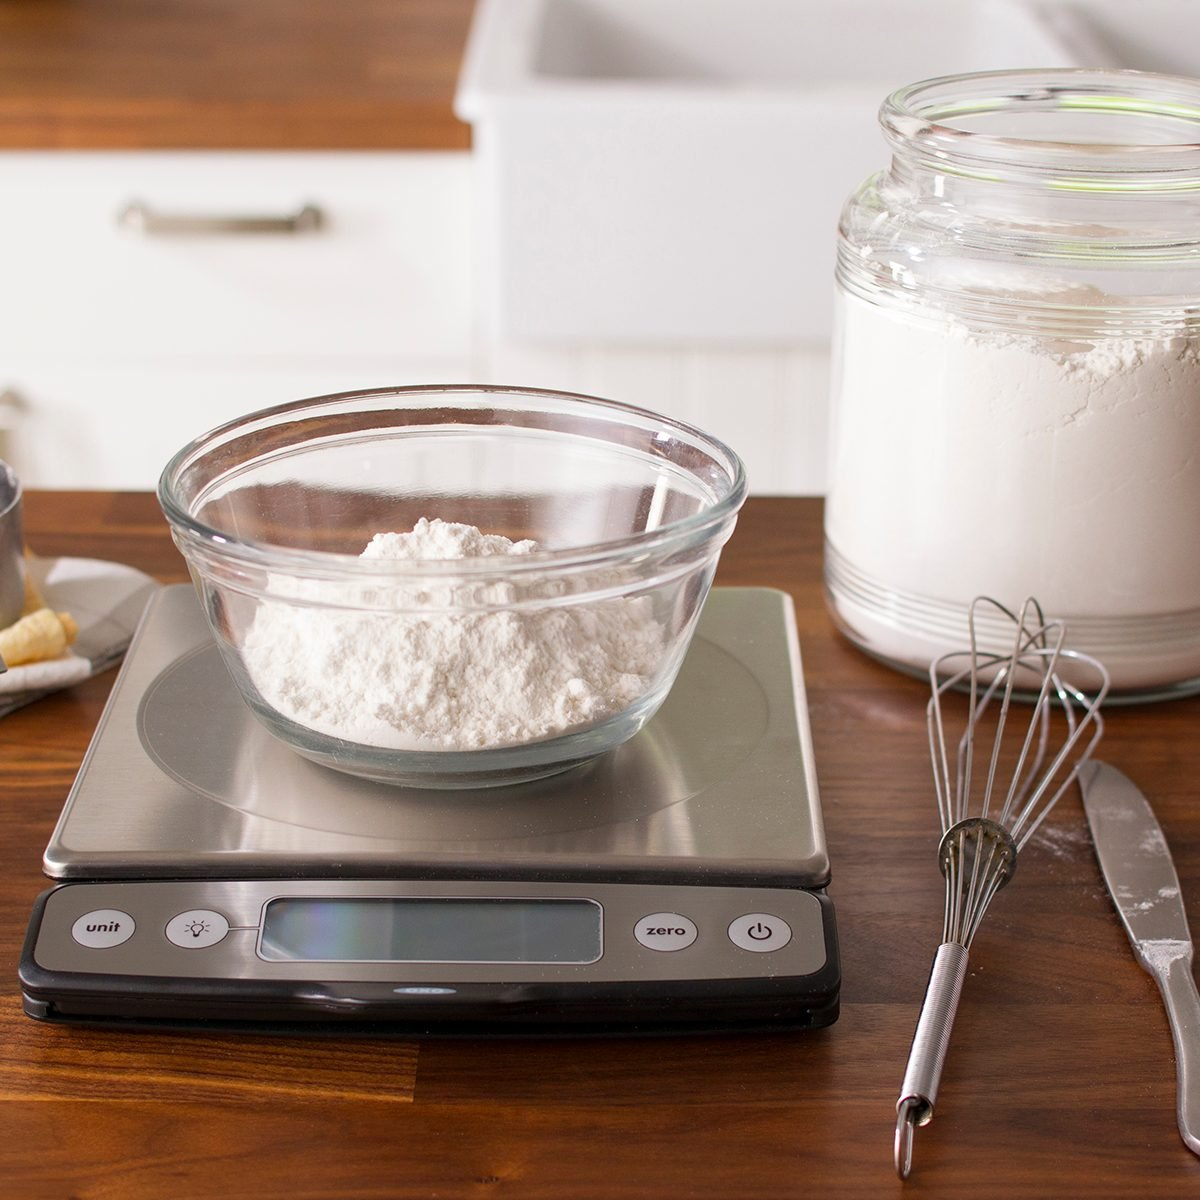 flour on a kitchen scale